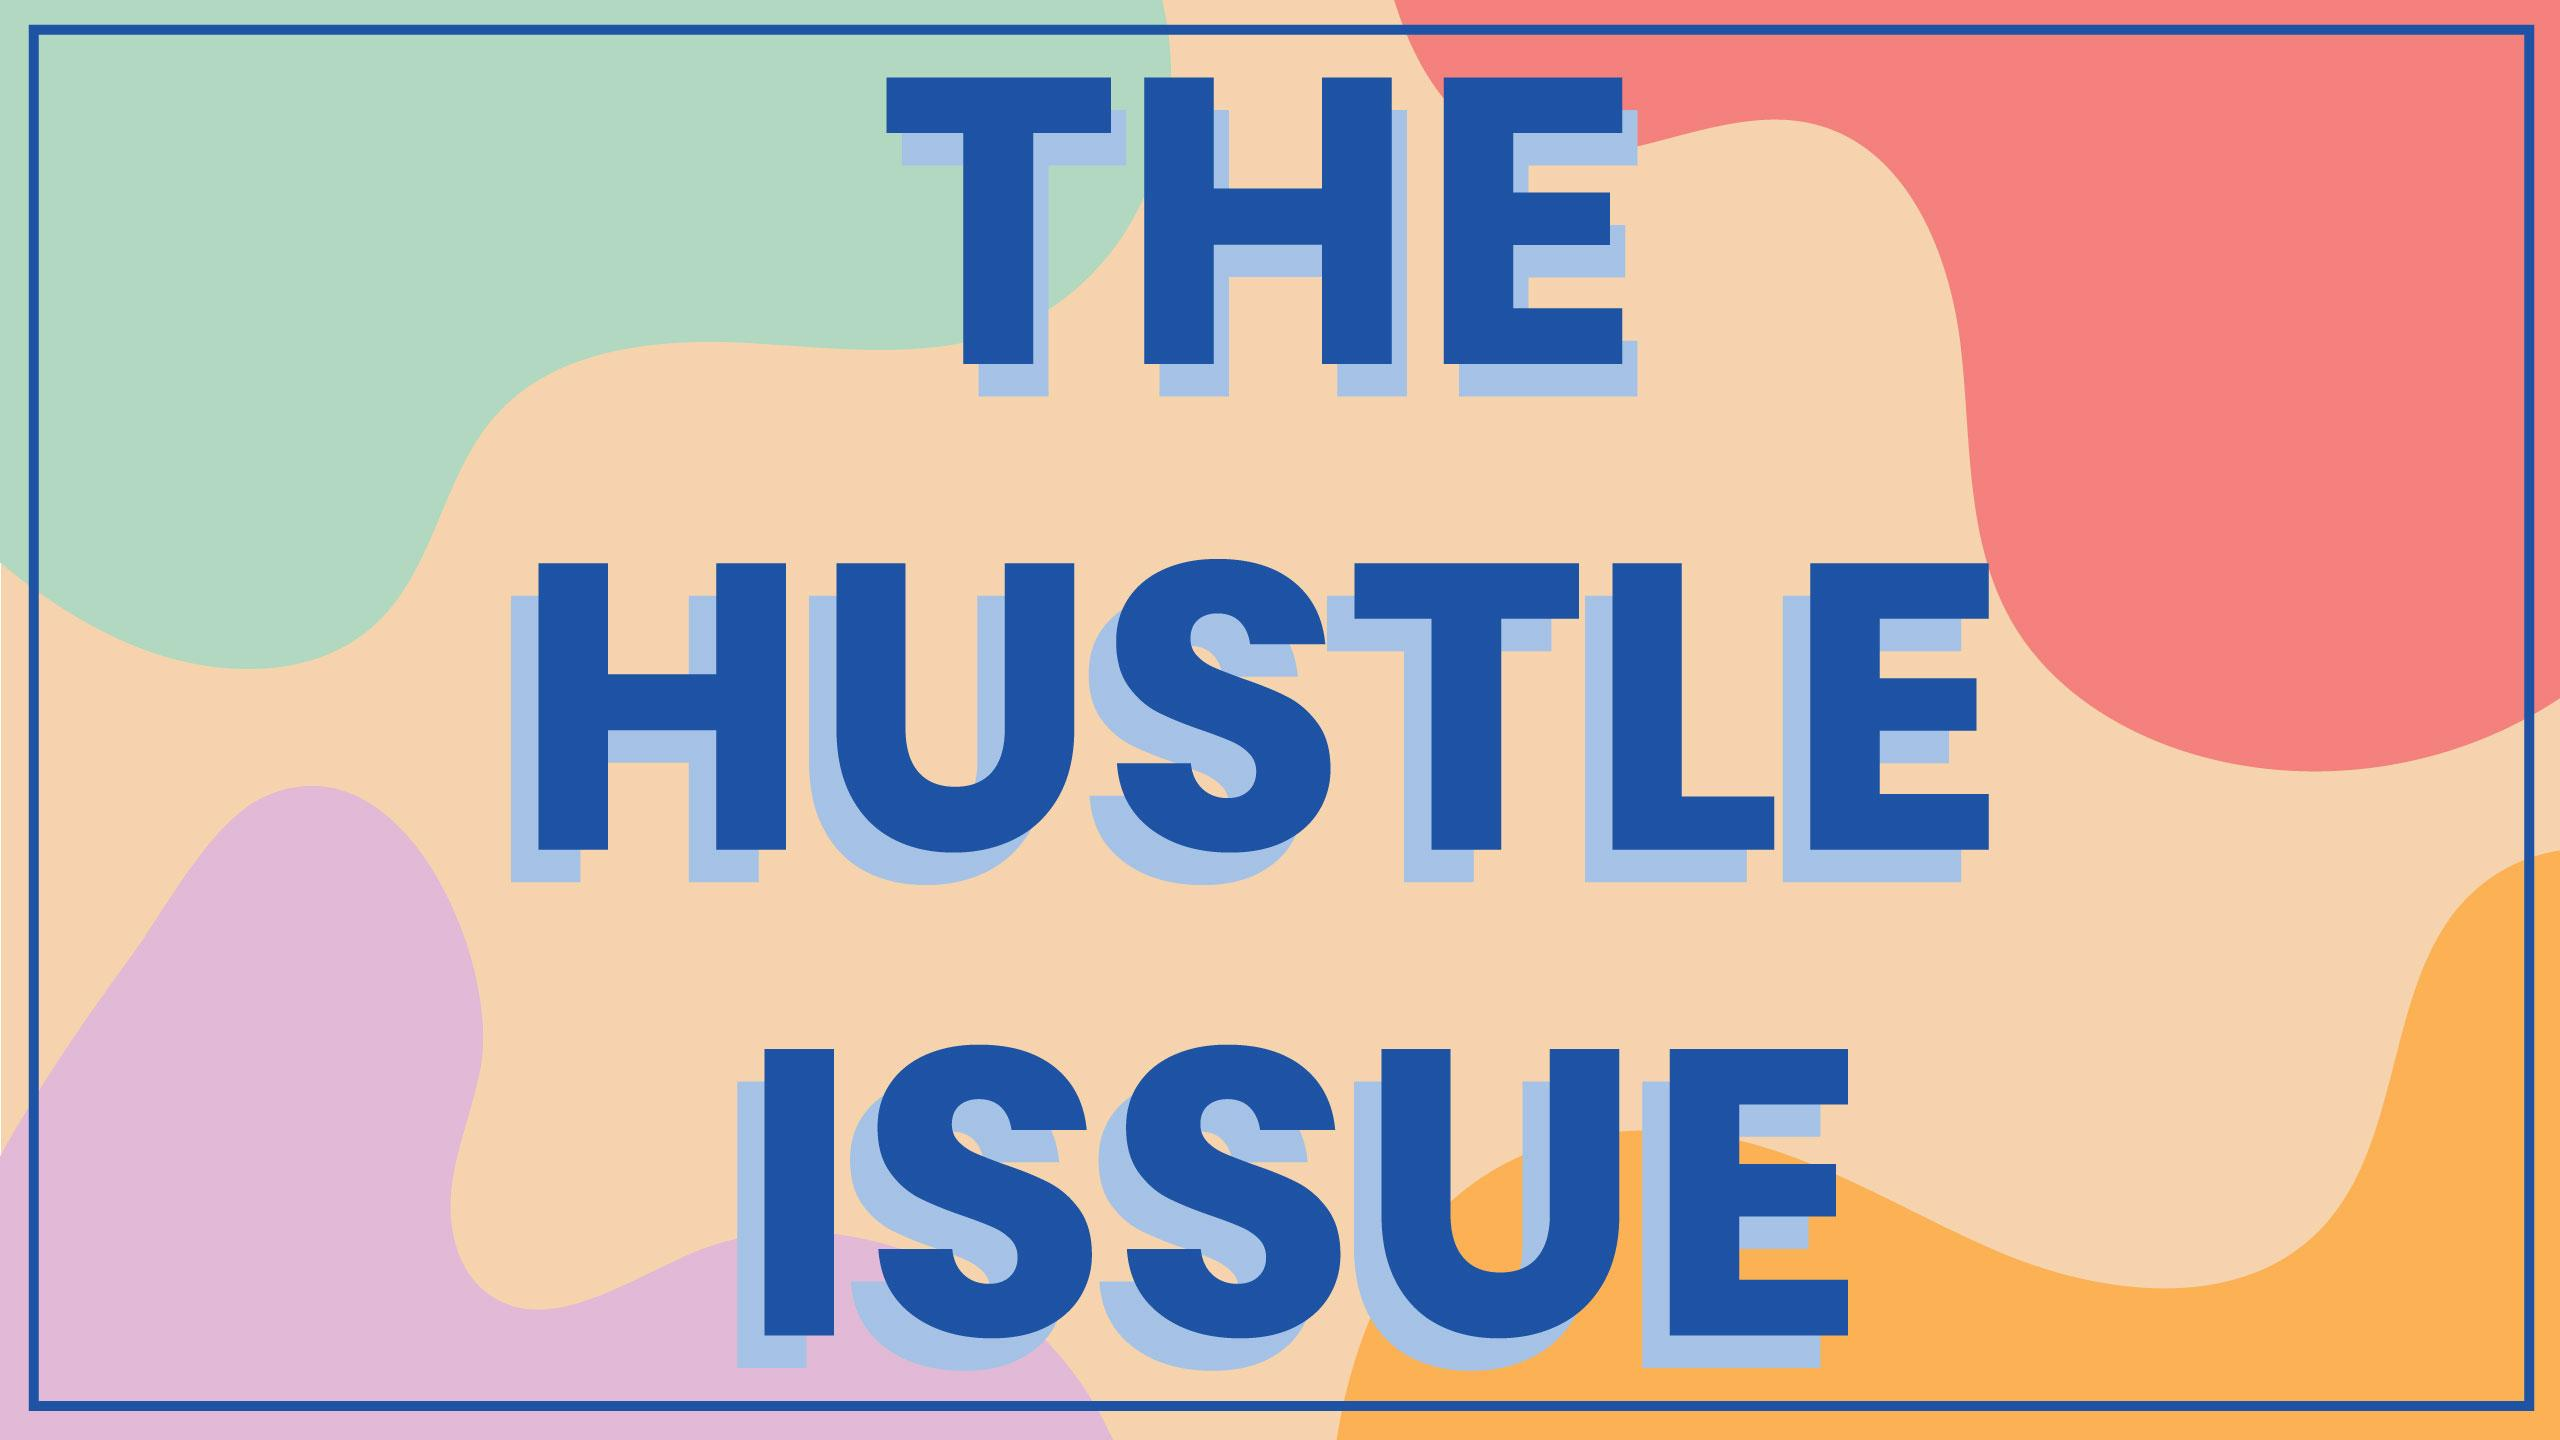 THE HUSTLE ISSUE